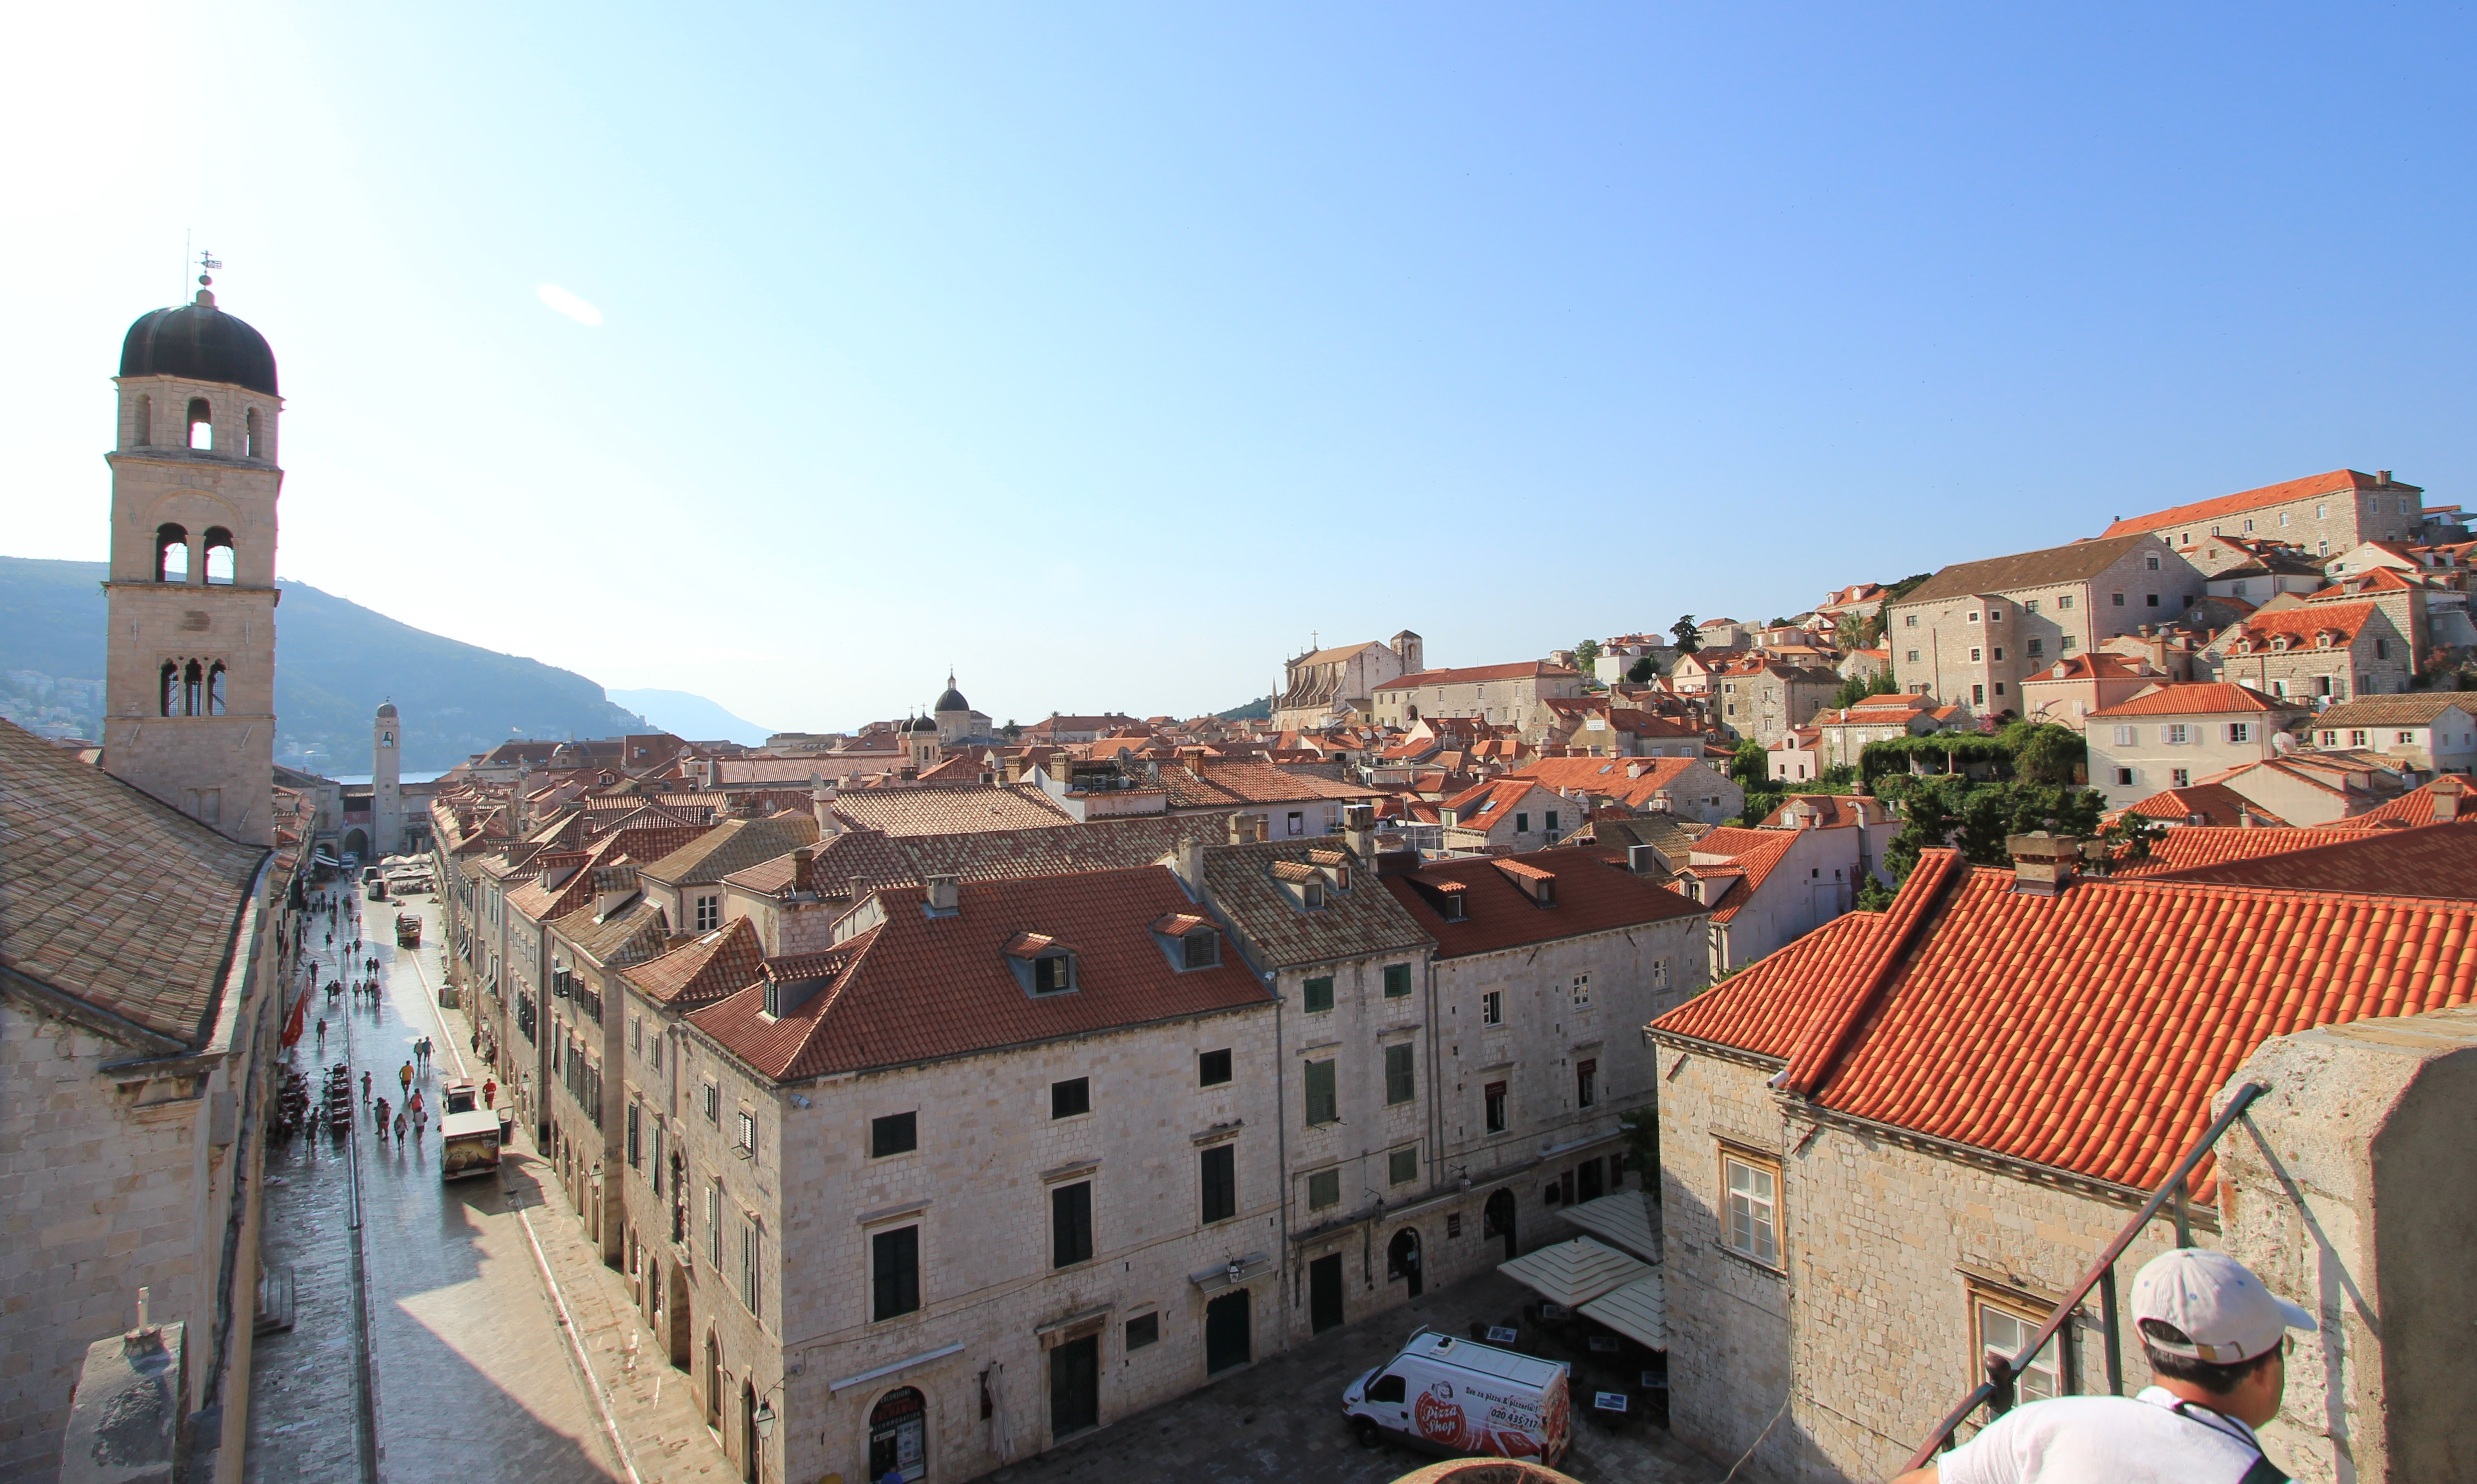 A view down Stradun from the top of the steps up to the Walls near Pile Gate